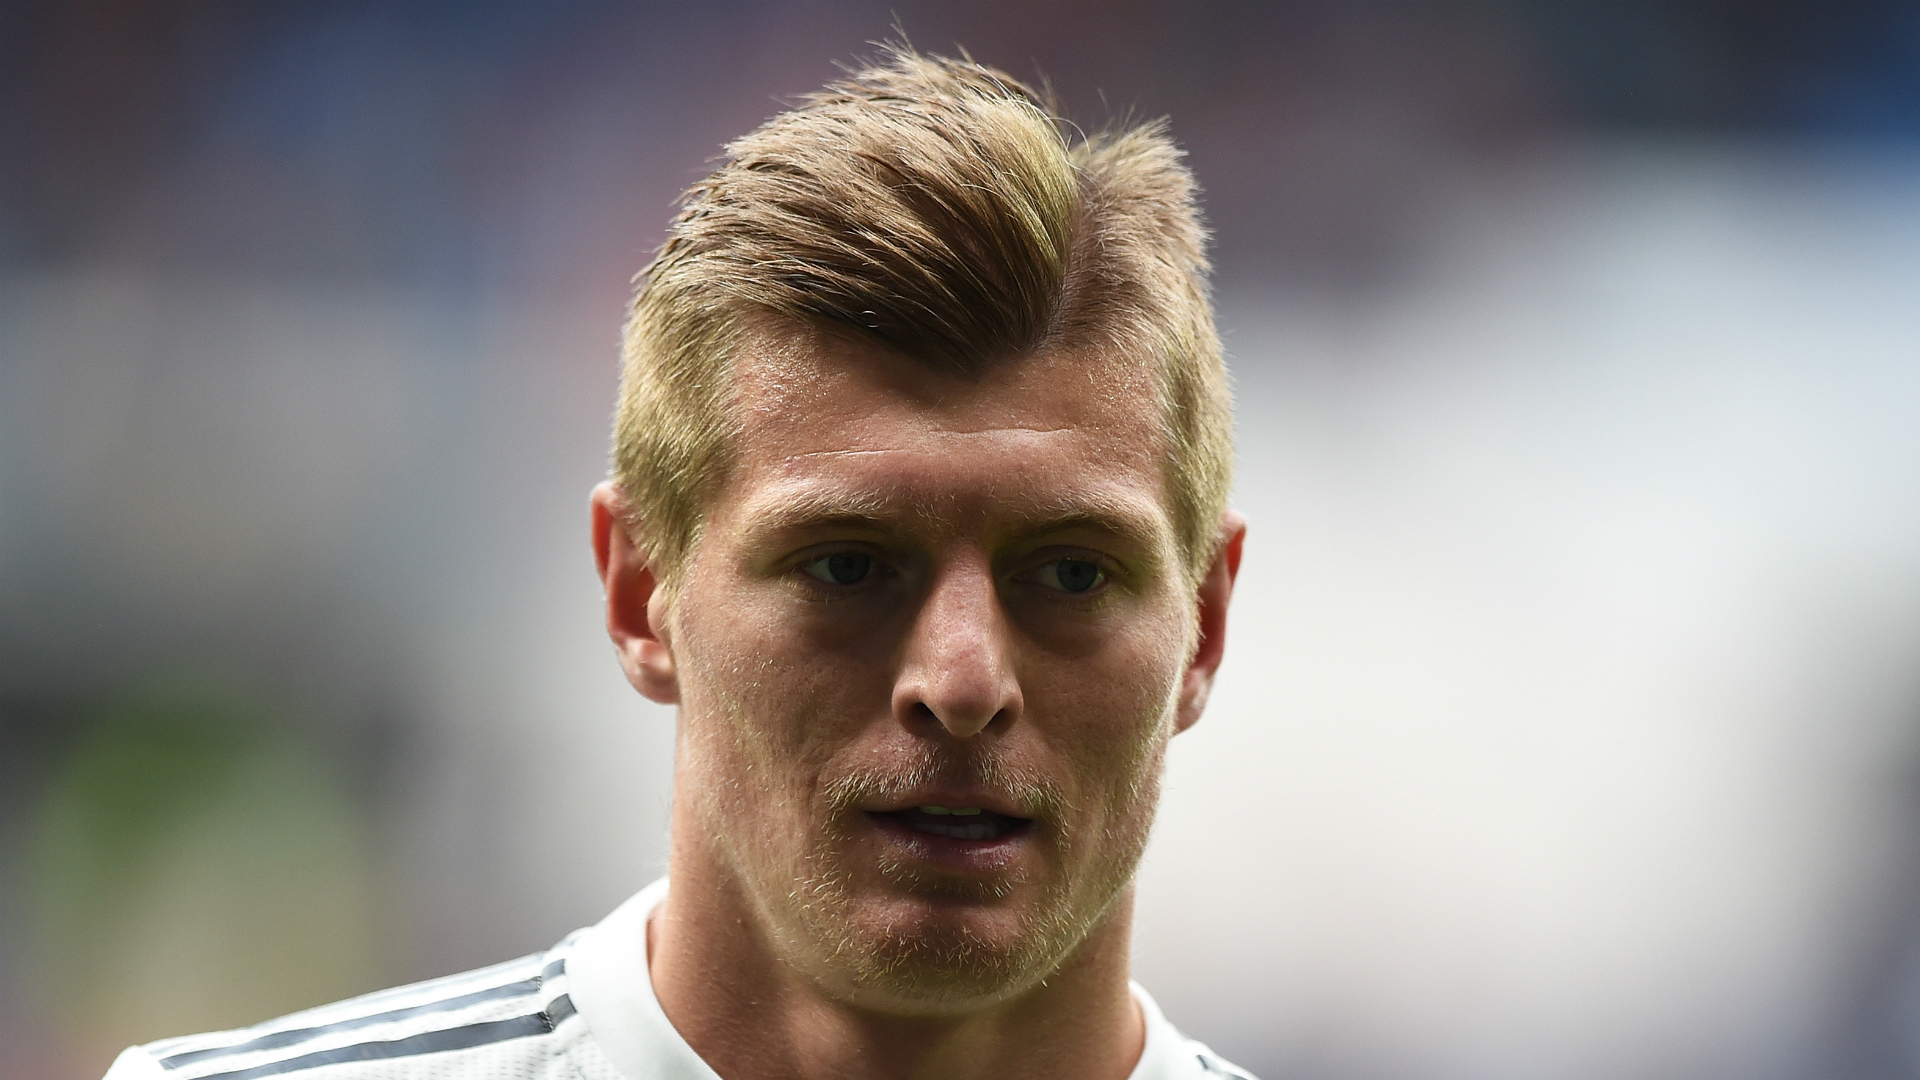 Absolutely false information - Kroos denies wanting to leave Real Madrid